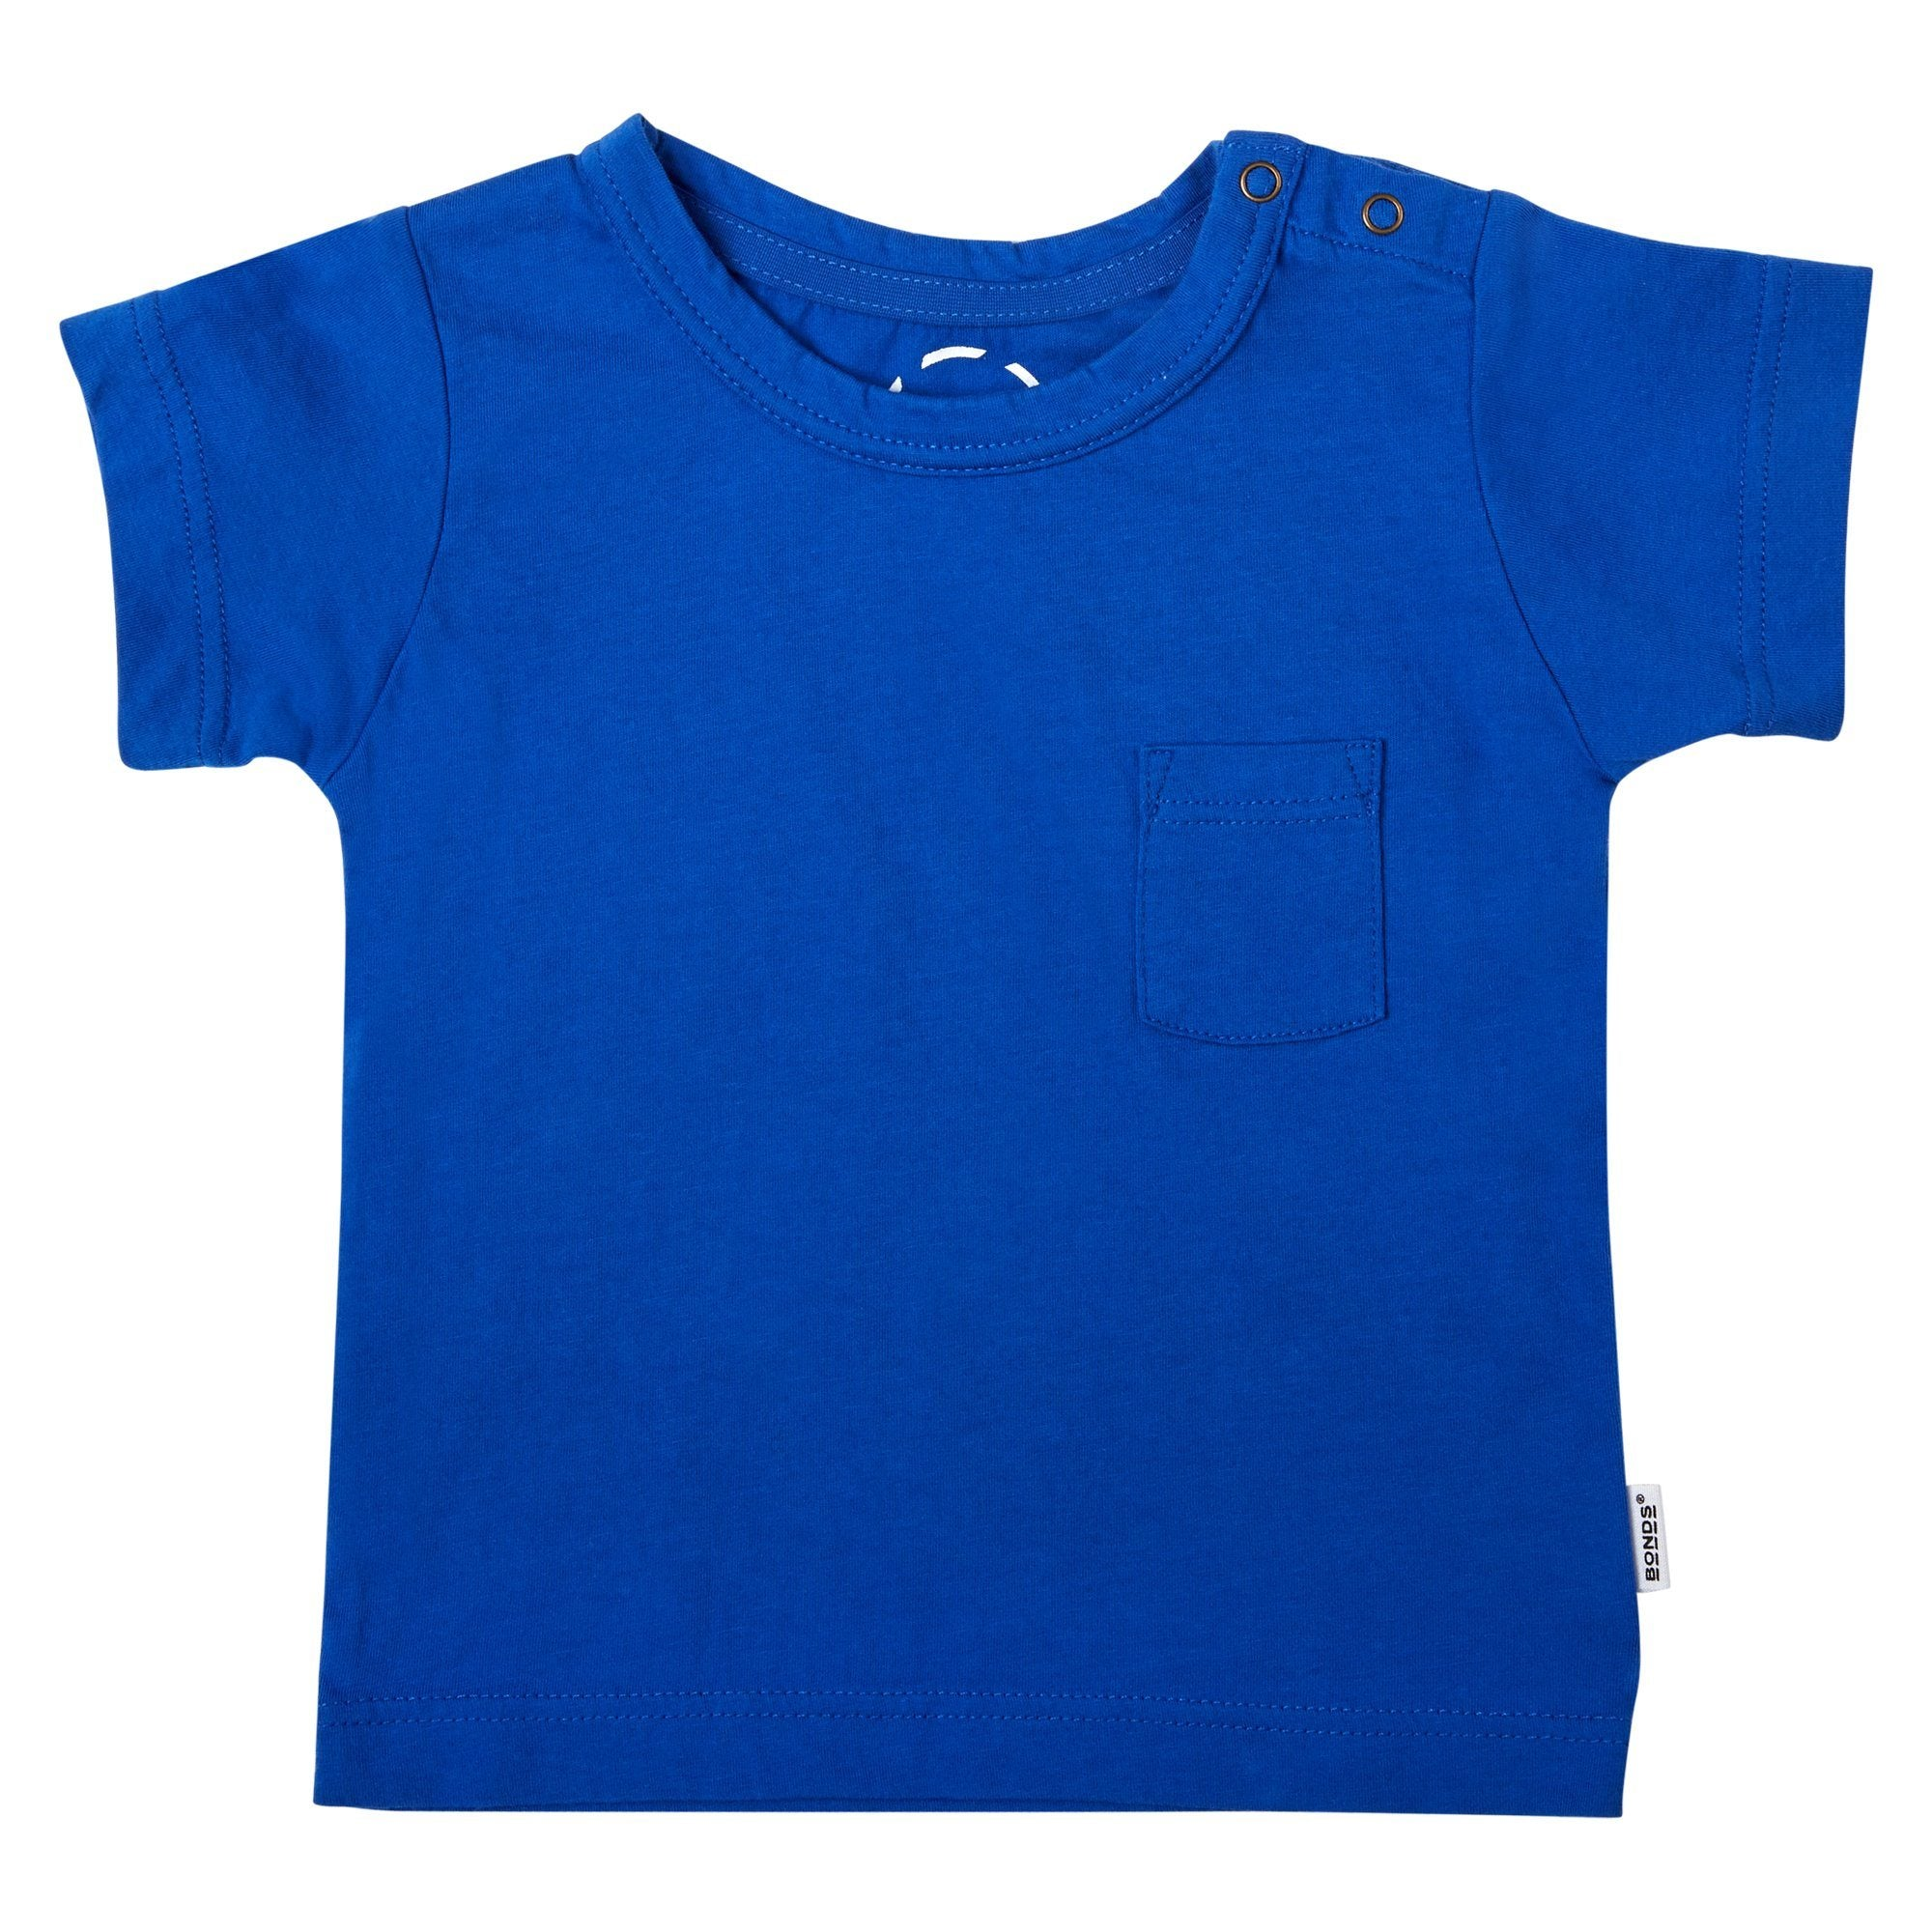 Bonds Baby Aussie Cotton Tee Blue Baby Isbister & Co Wholesale